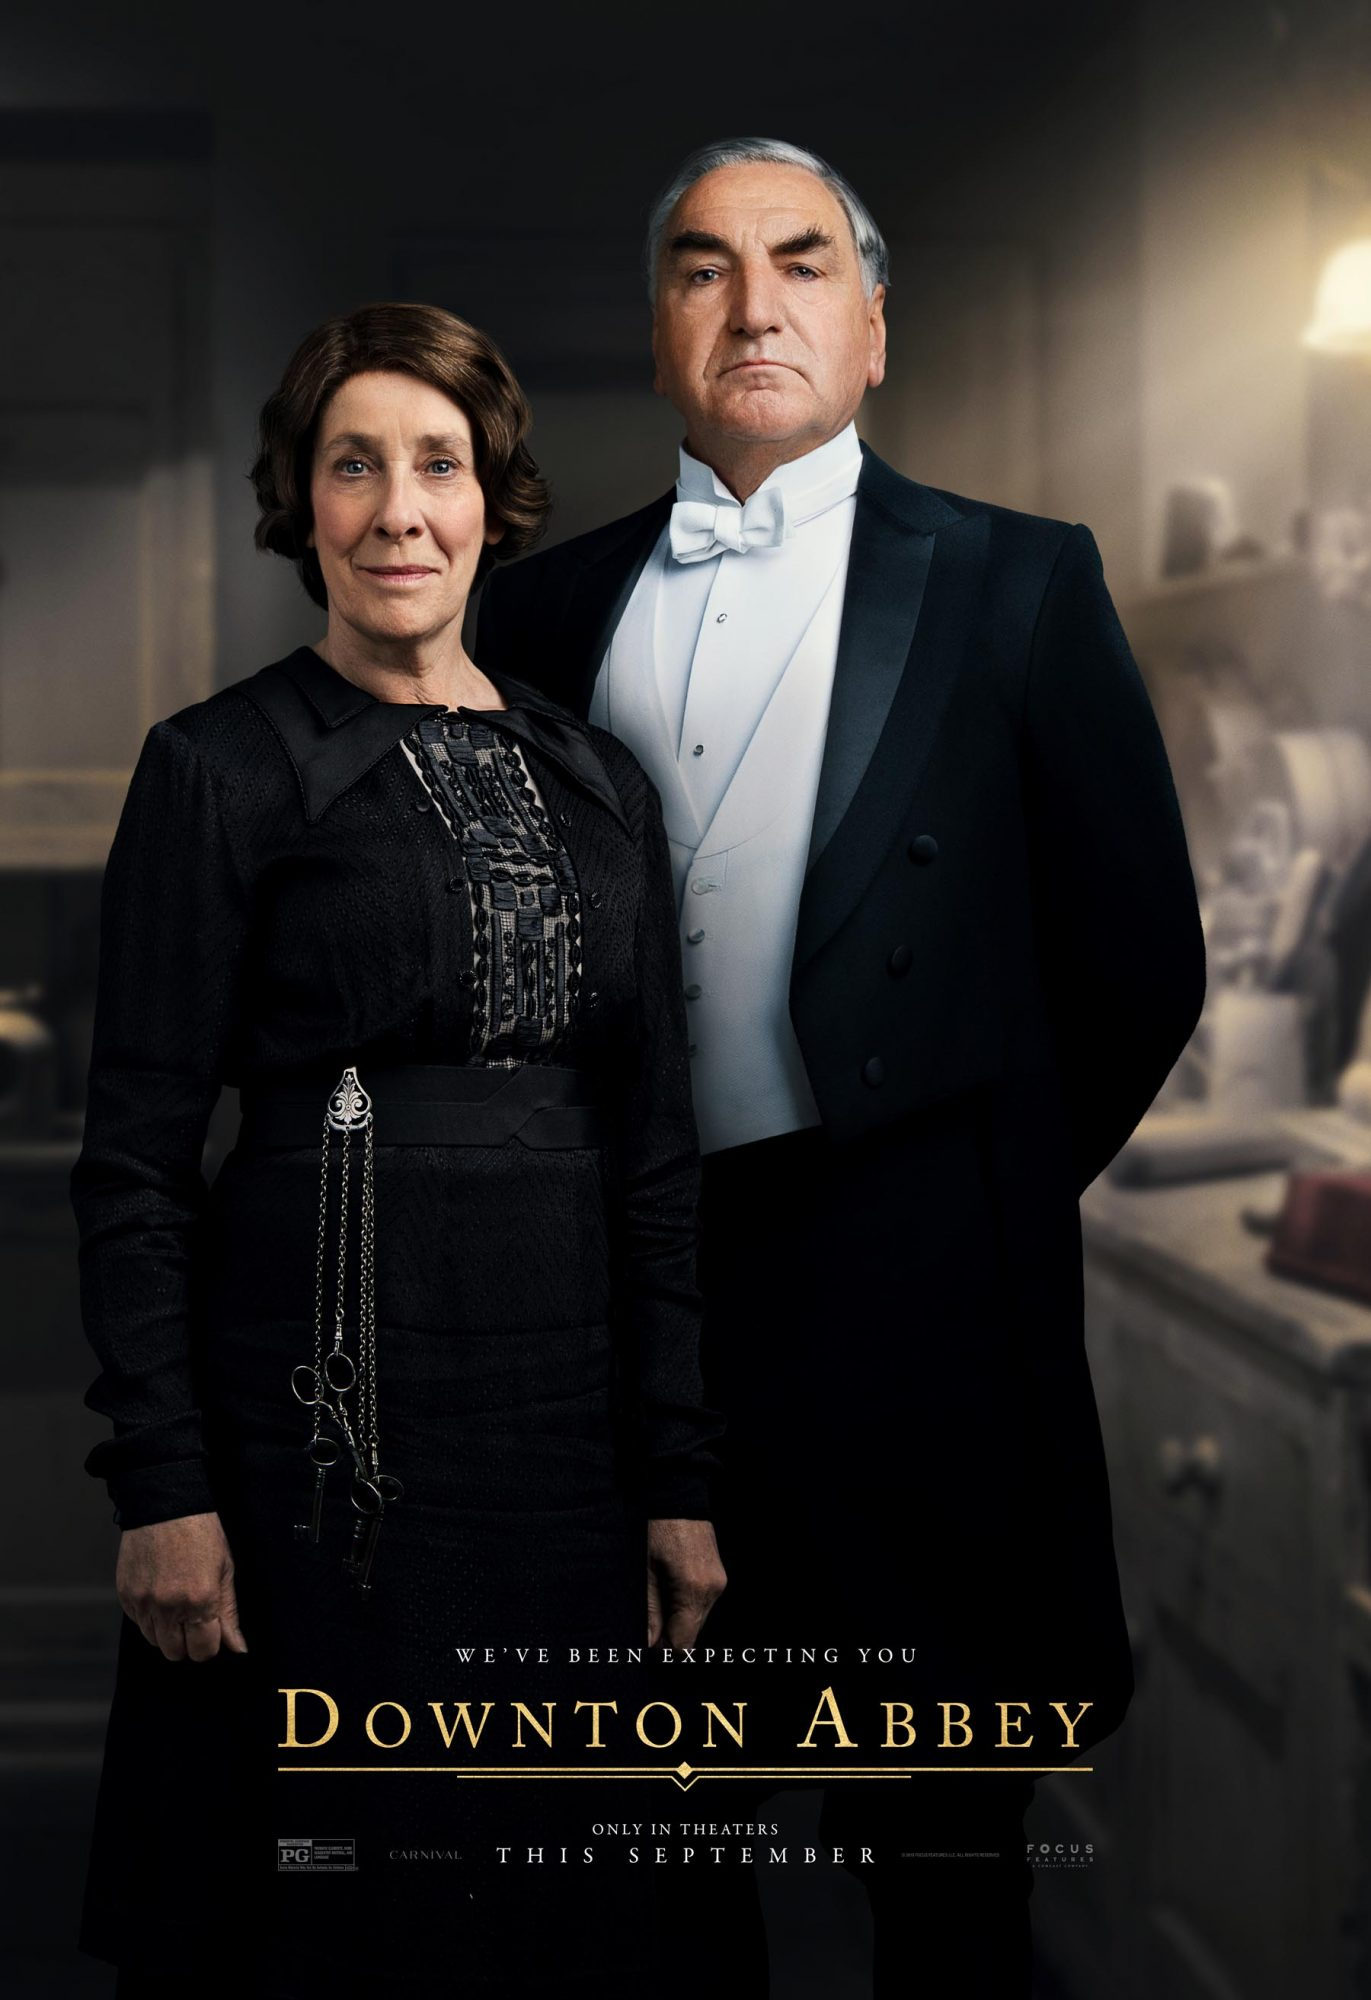 Downton Abbey Character Posters